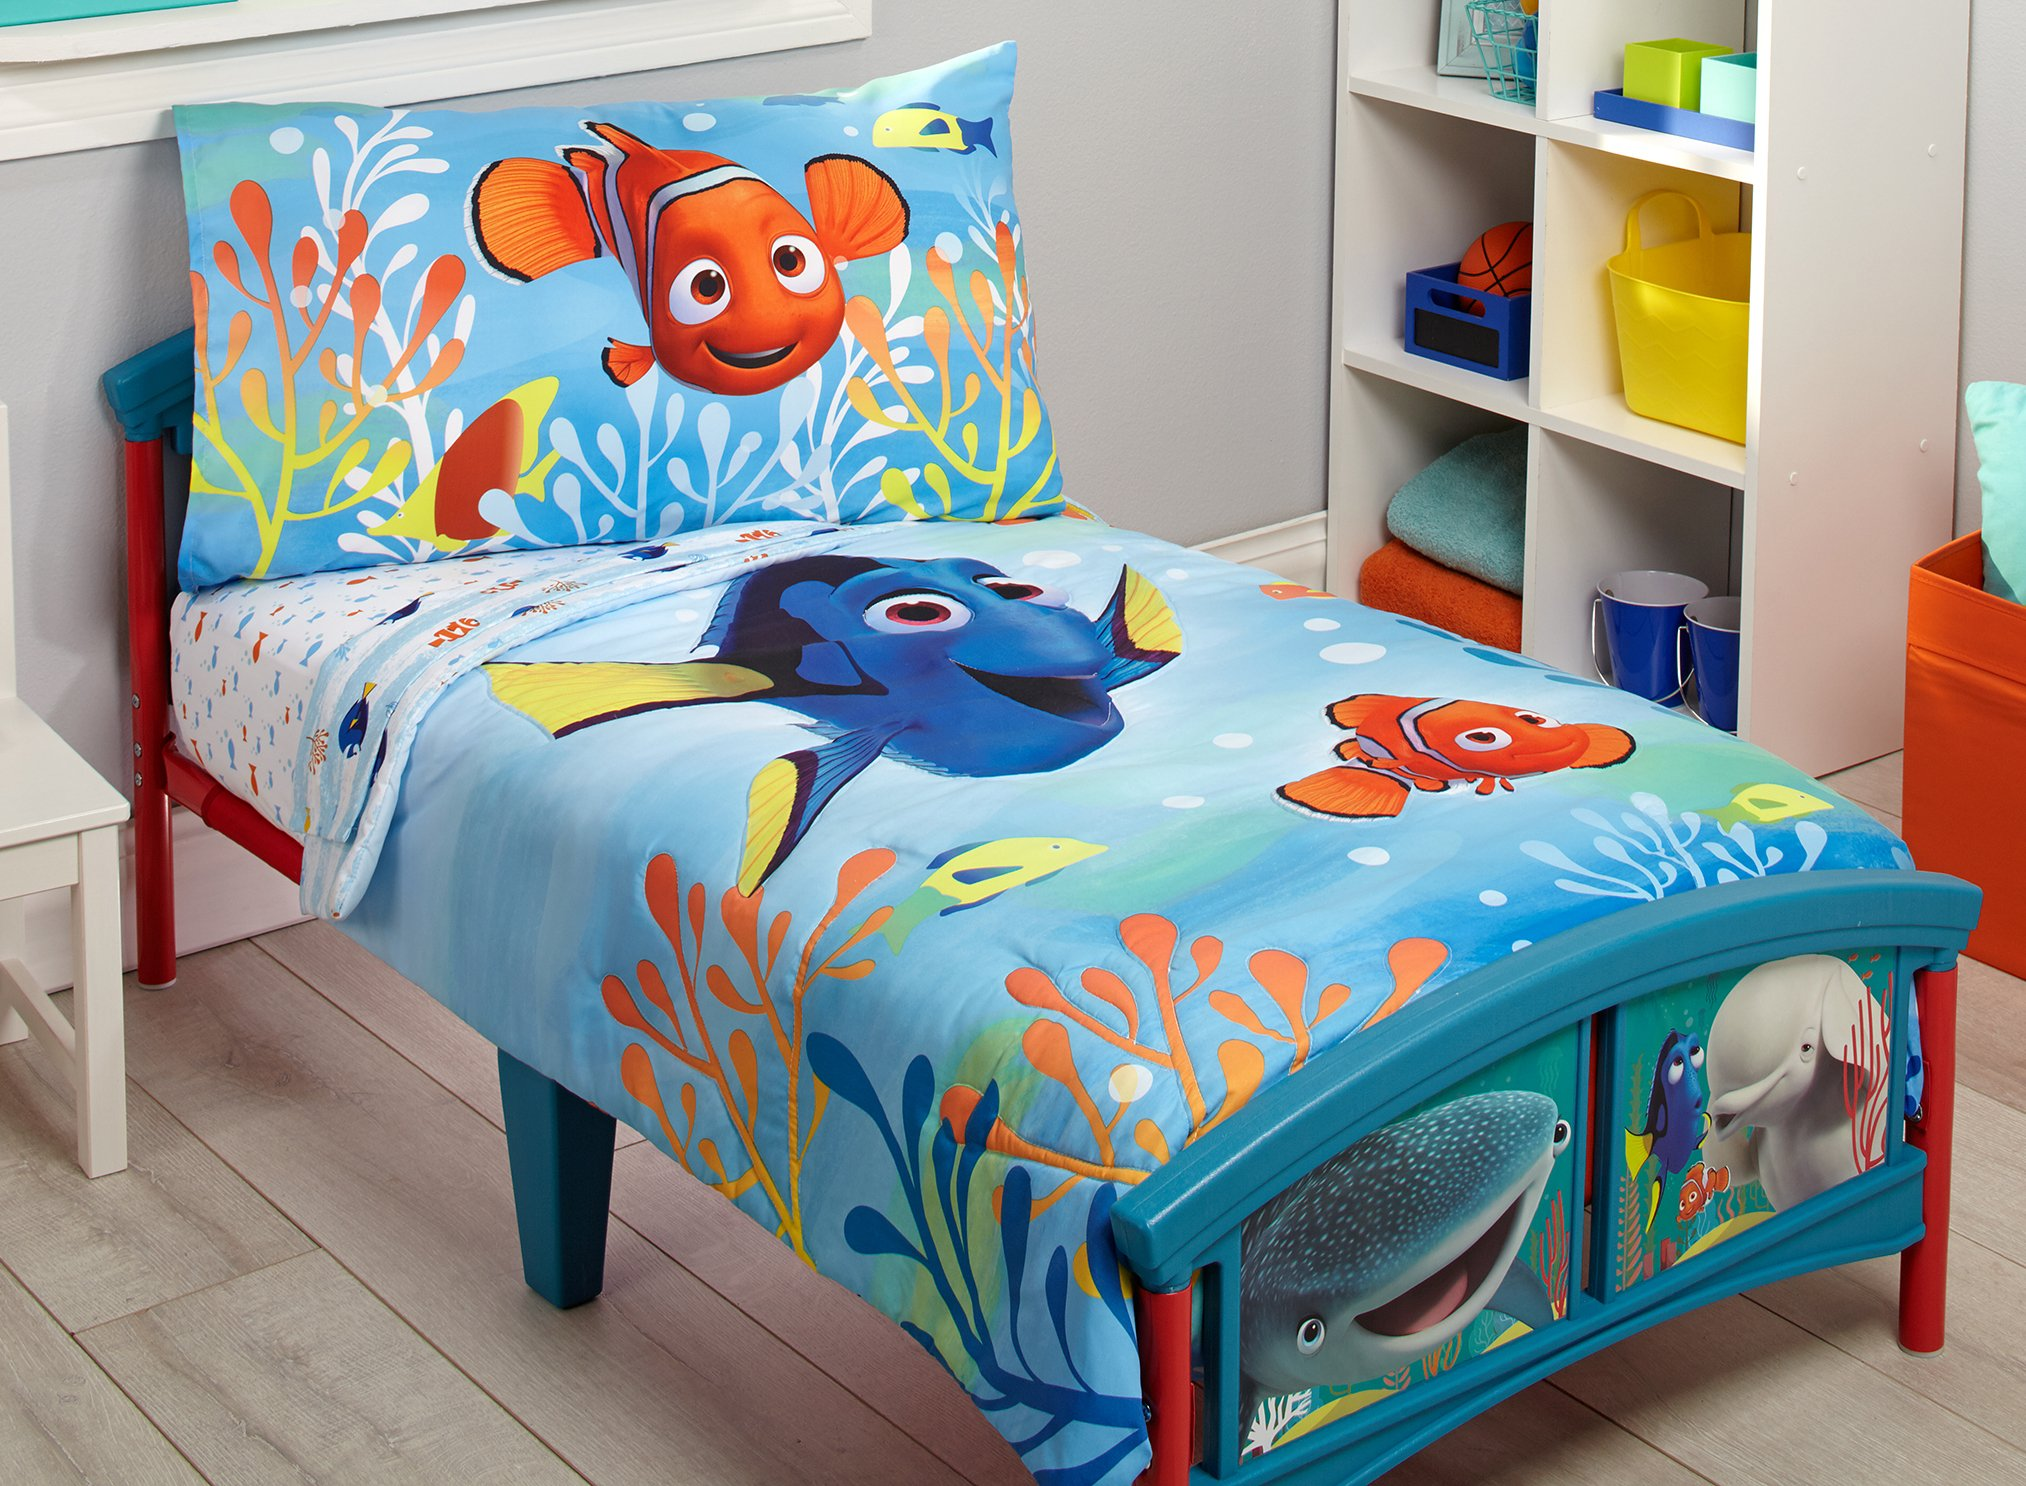 Disney Finding Dory 4 Piece Toddler Bedding Set, Blue/Orange/Yellow by Disney